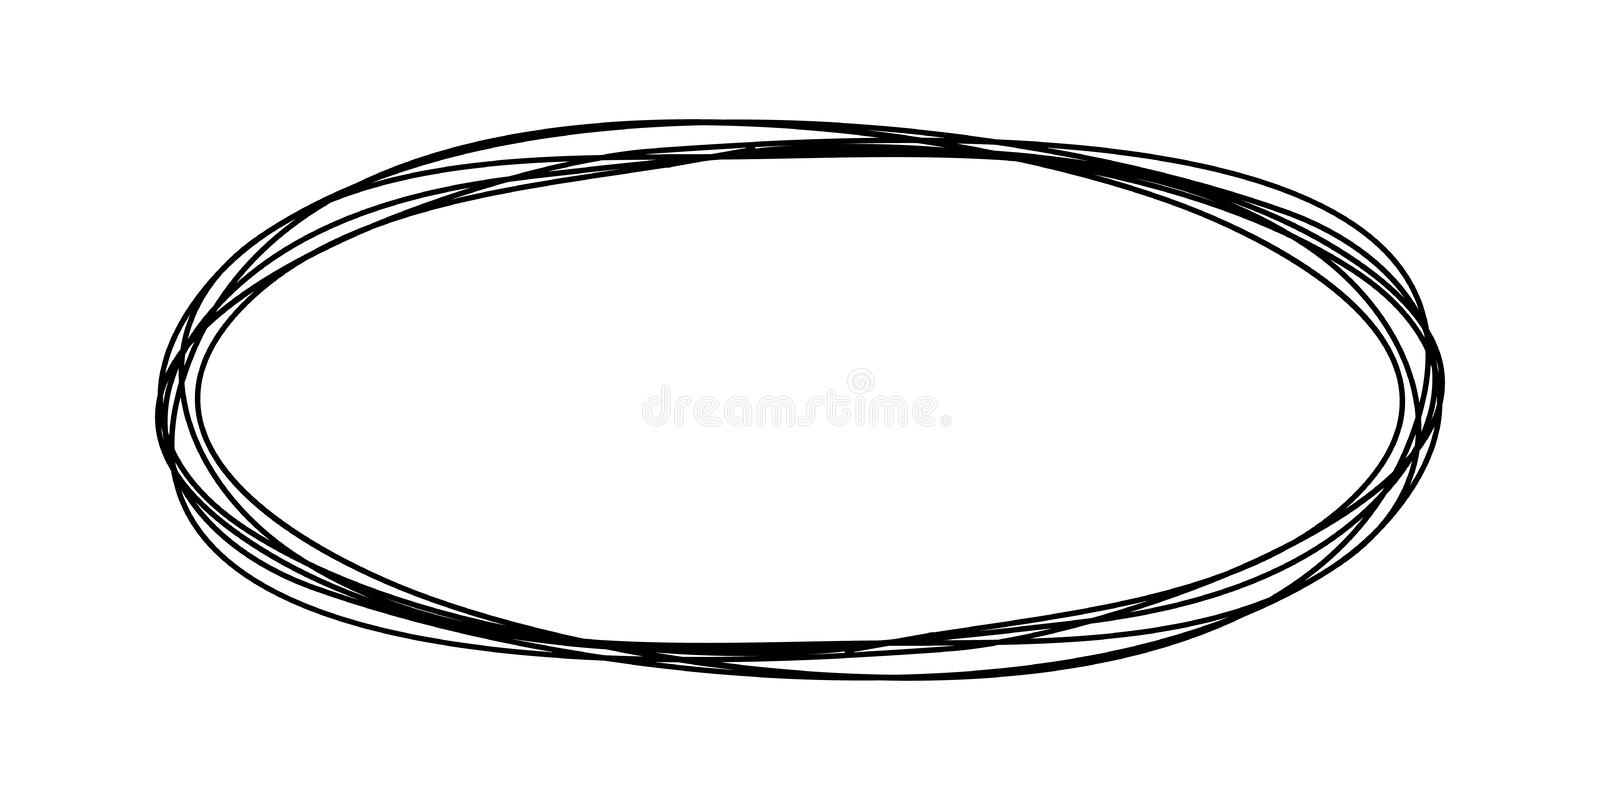 Grungy round scribble oval. Hand drawn with thin line, divider shape. Vector illustration royalty free illustration